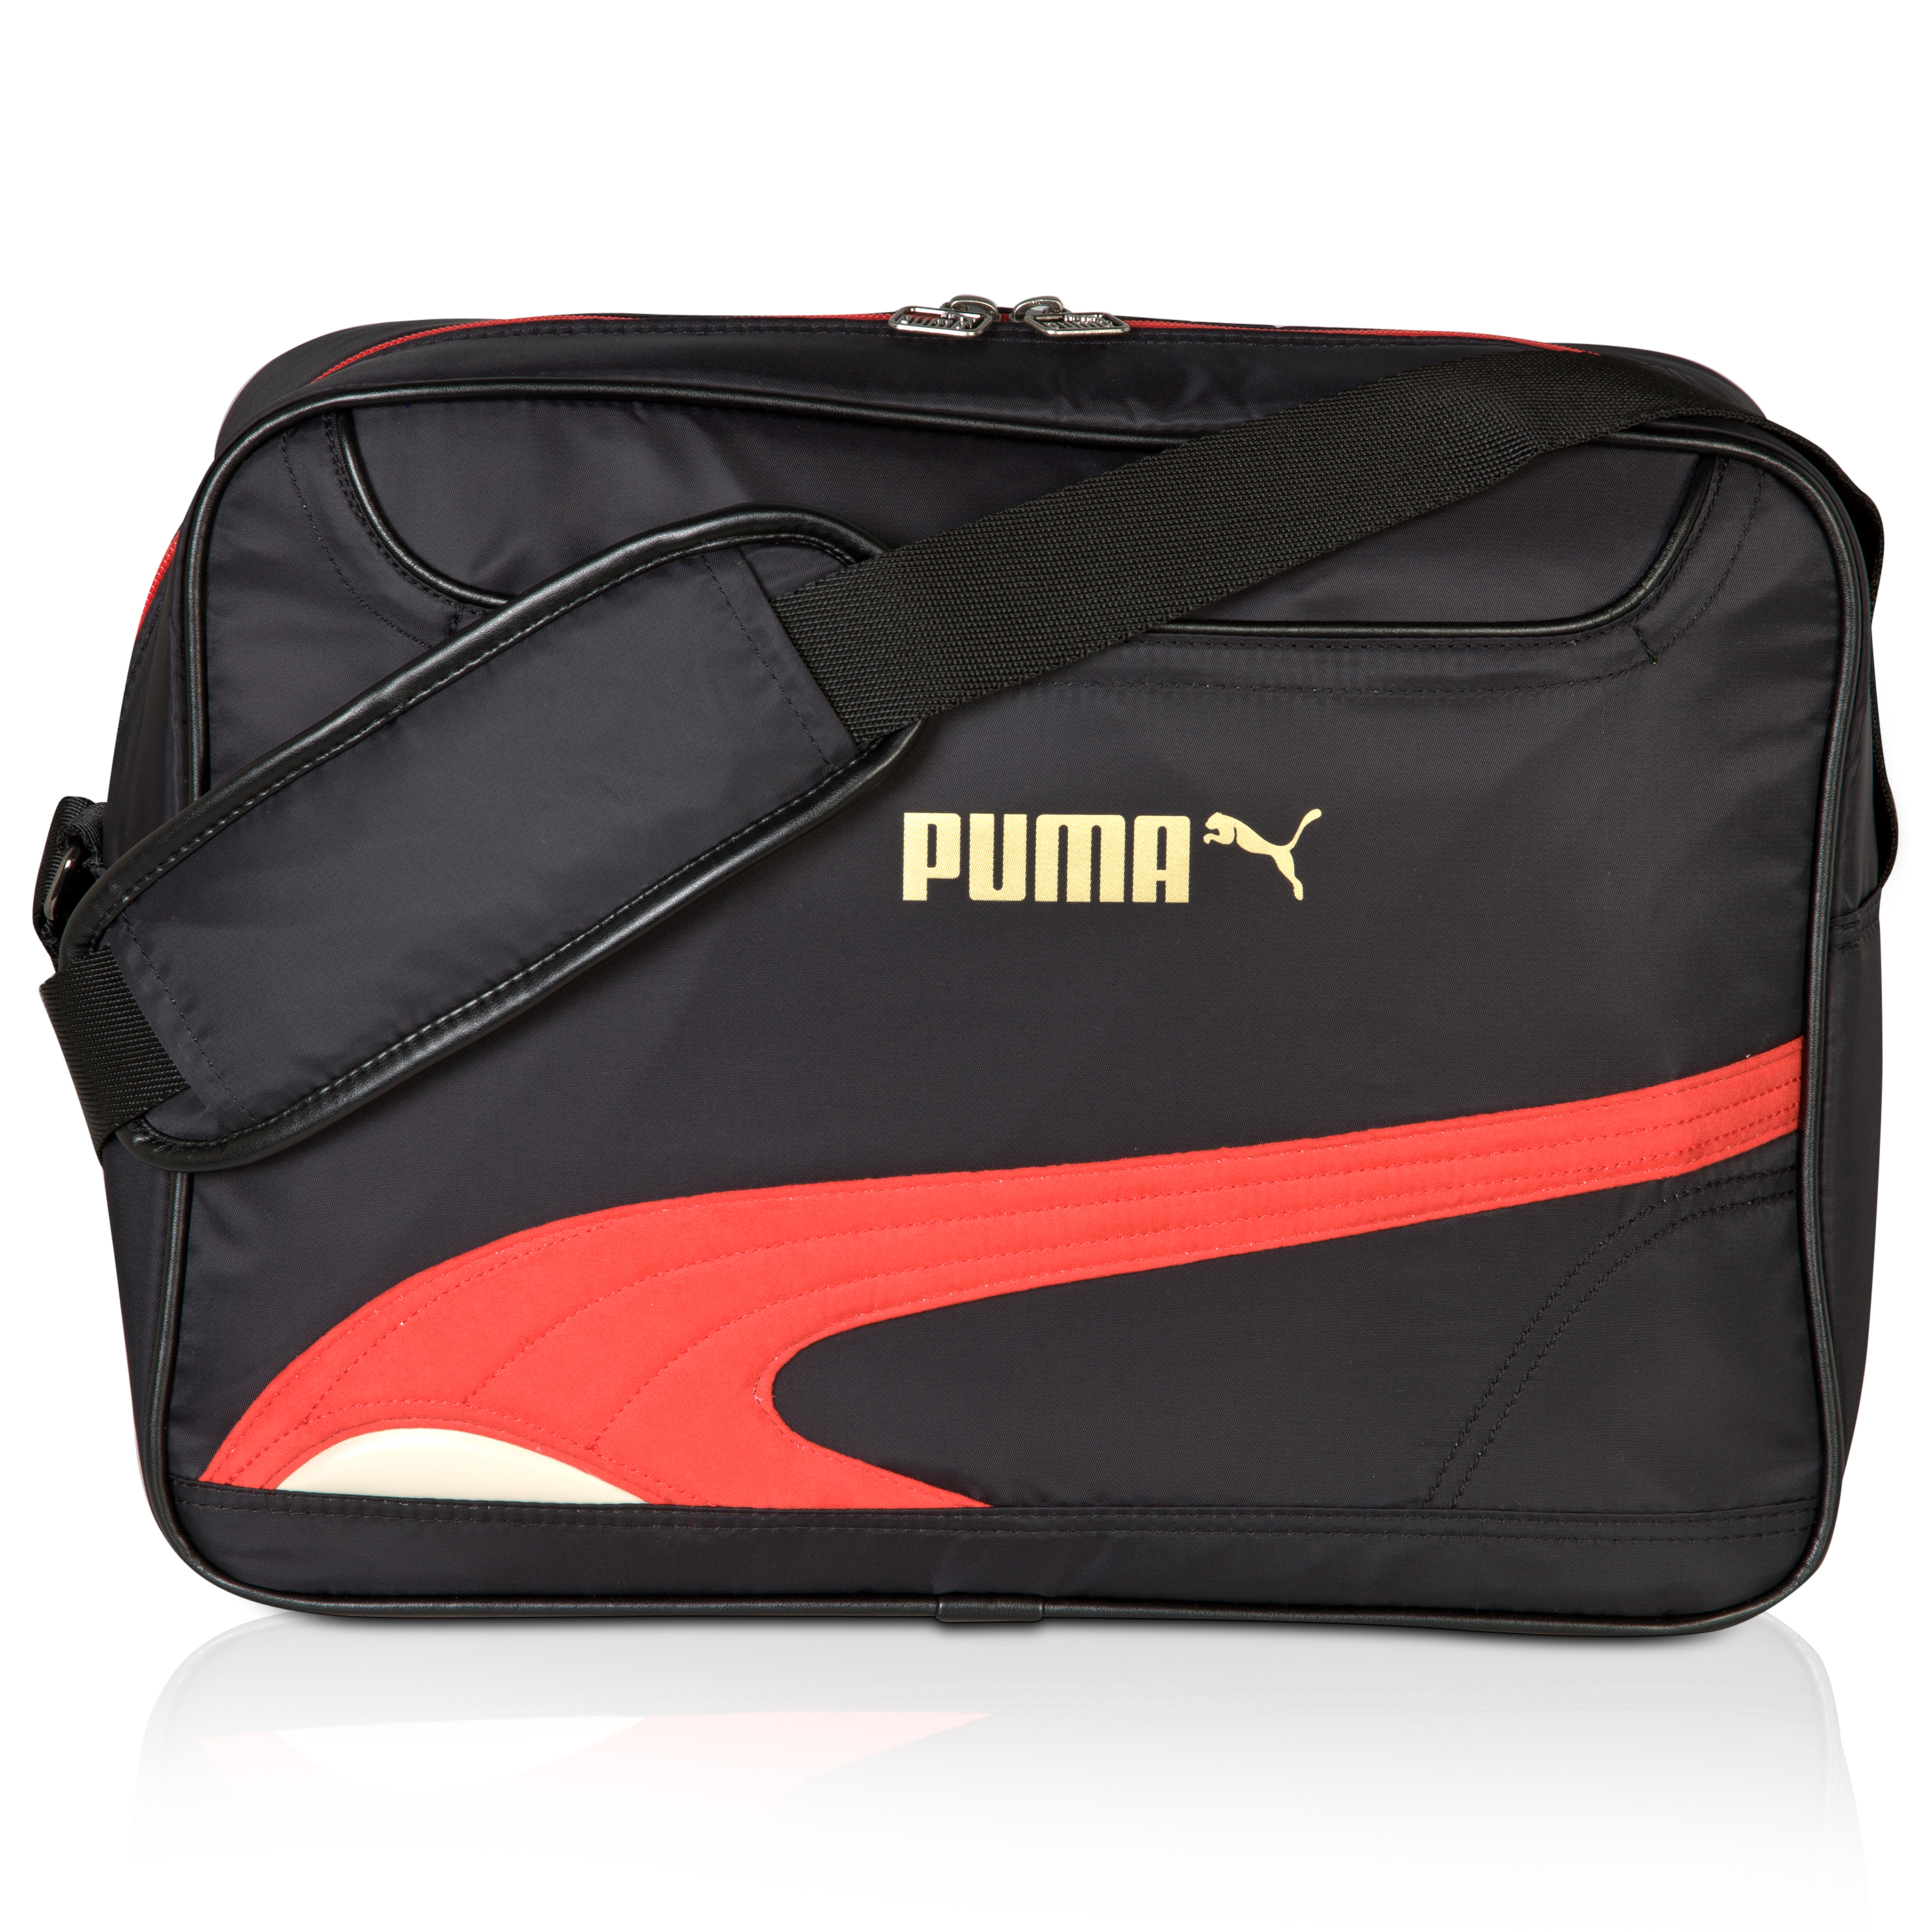 Puma Mirage Reporter Bag - Black/ Ribbon Red